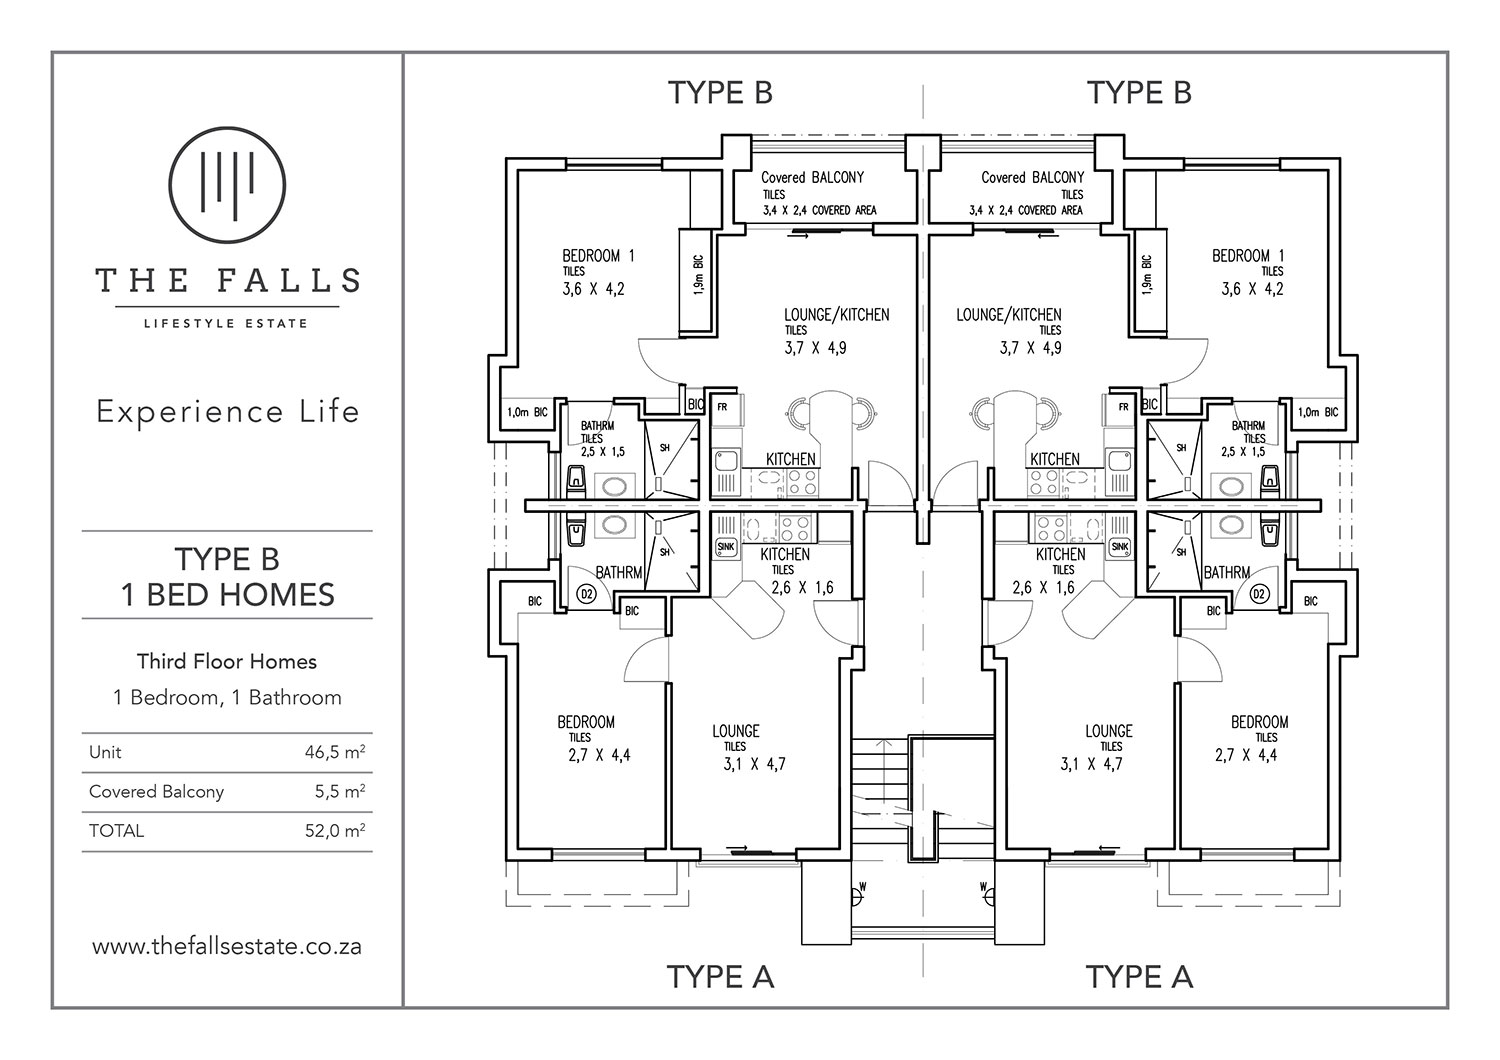 The Fall Lifestyle Estate - 1 Bed Type B Third Floor Home for sale - floorplans